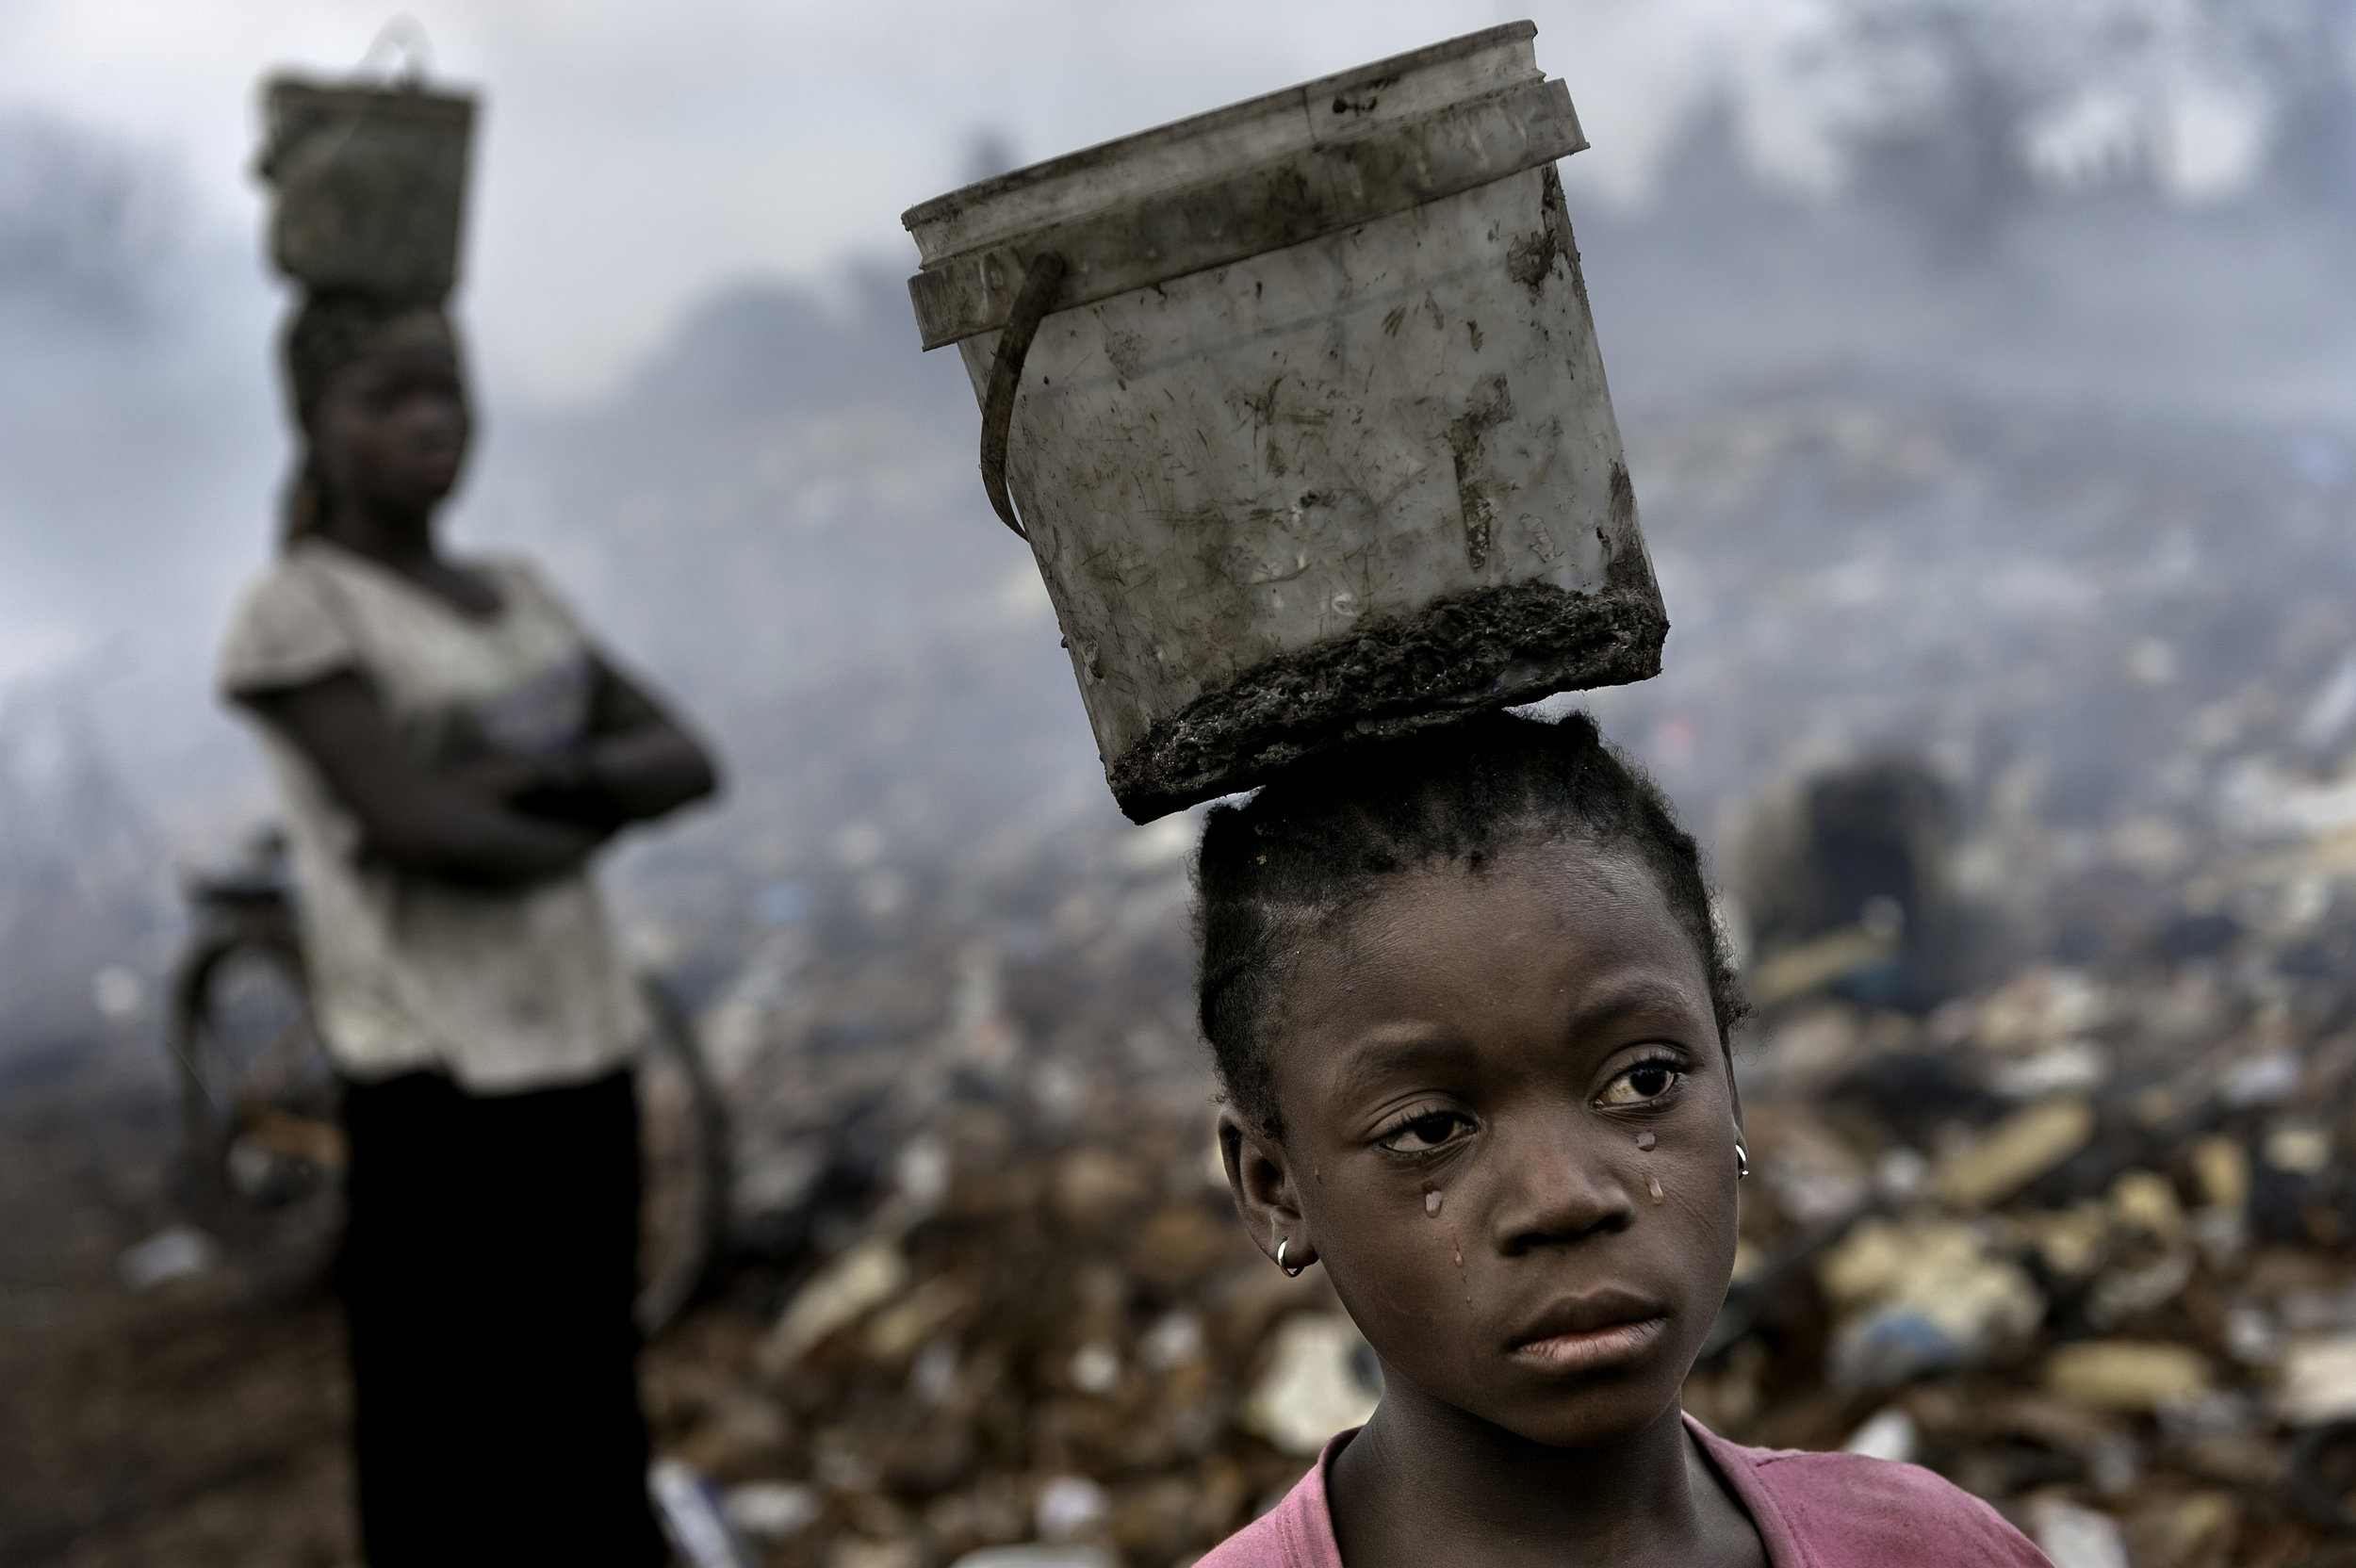 WORKING TO SURVIVE - In an e-waste dump that kills nearly everything that it touches, Fati, 8, works with other children searching through hazardous waste in hopes of finding whatever she can to exchange for pennies in order to survive. While balancing a bucket on her head with the little metal she has found, tears stream down her face as the result of the pain that comes with the malaria she contracted some years ago. This is work she must do to survive.